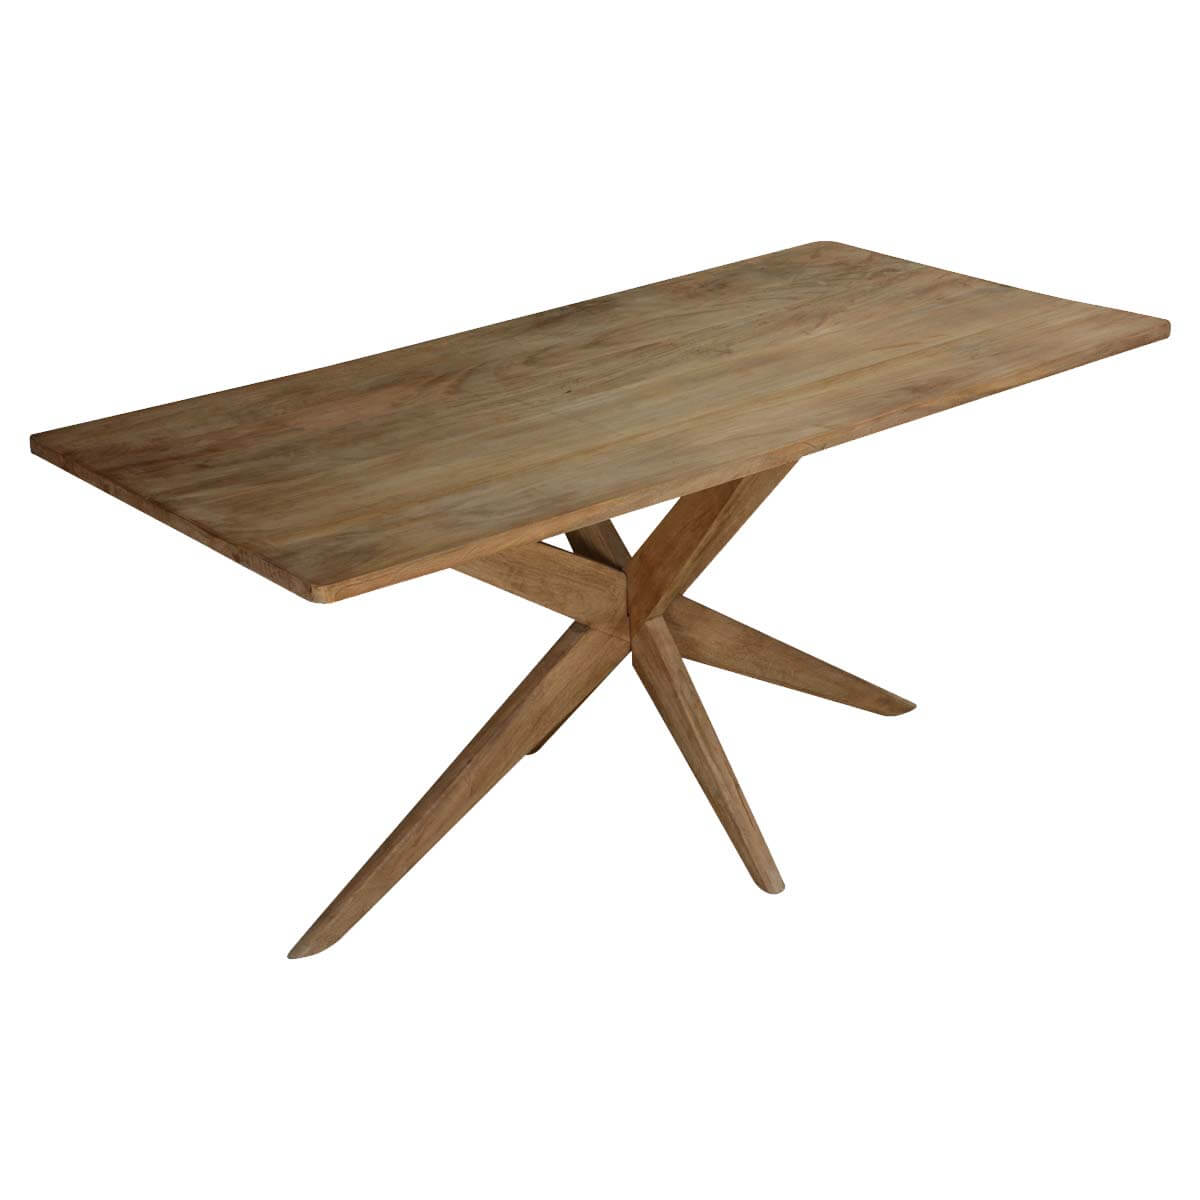 Rustic Starburst Mango Wood 63 Dining Table